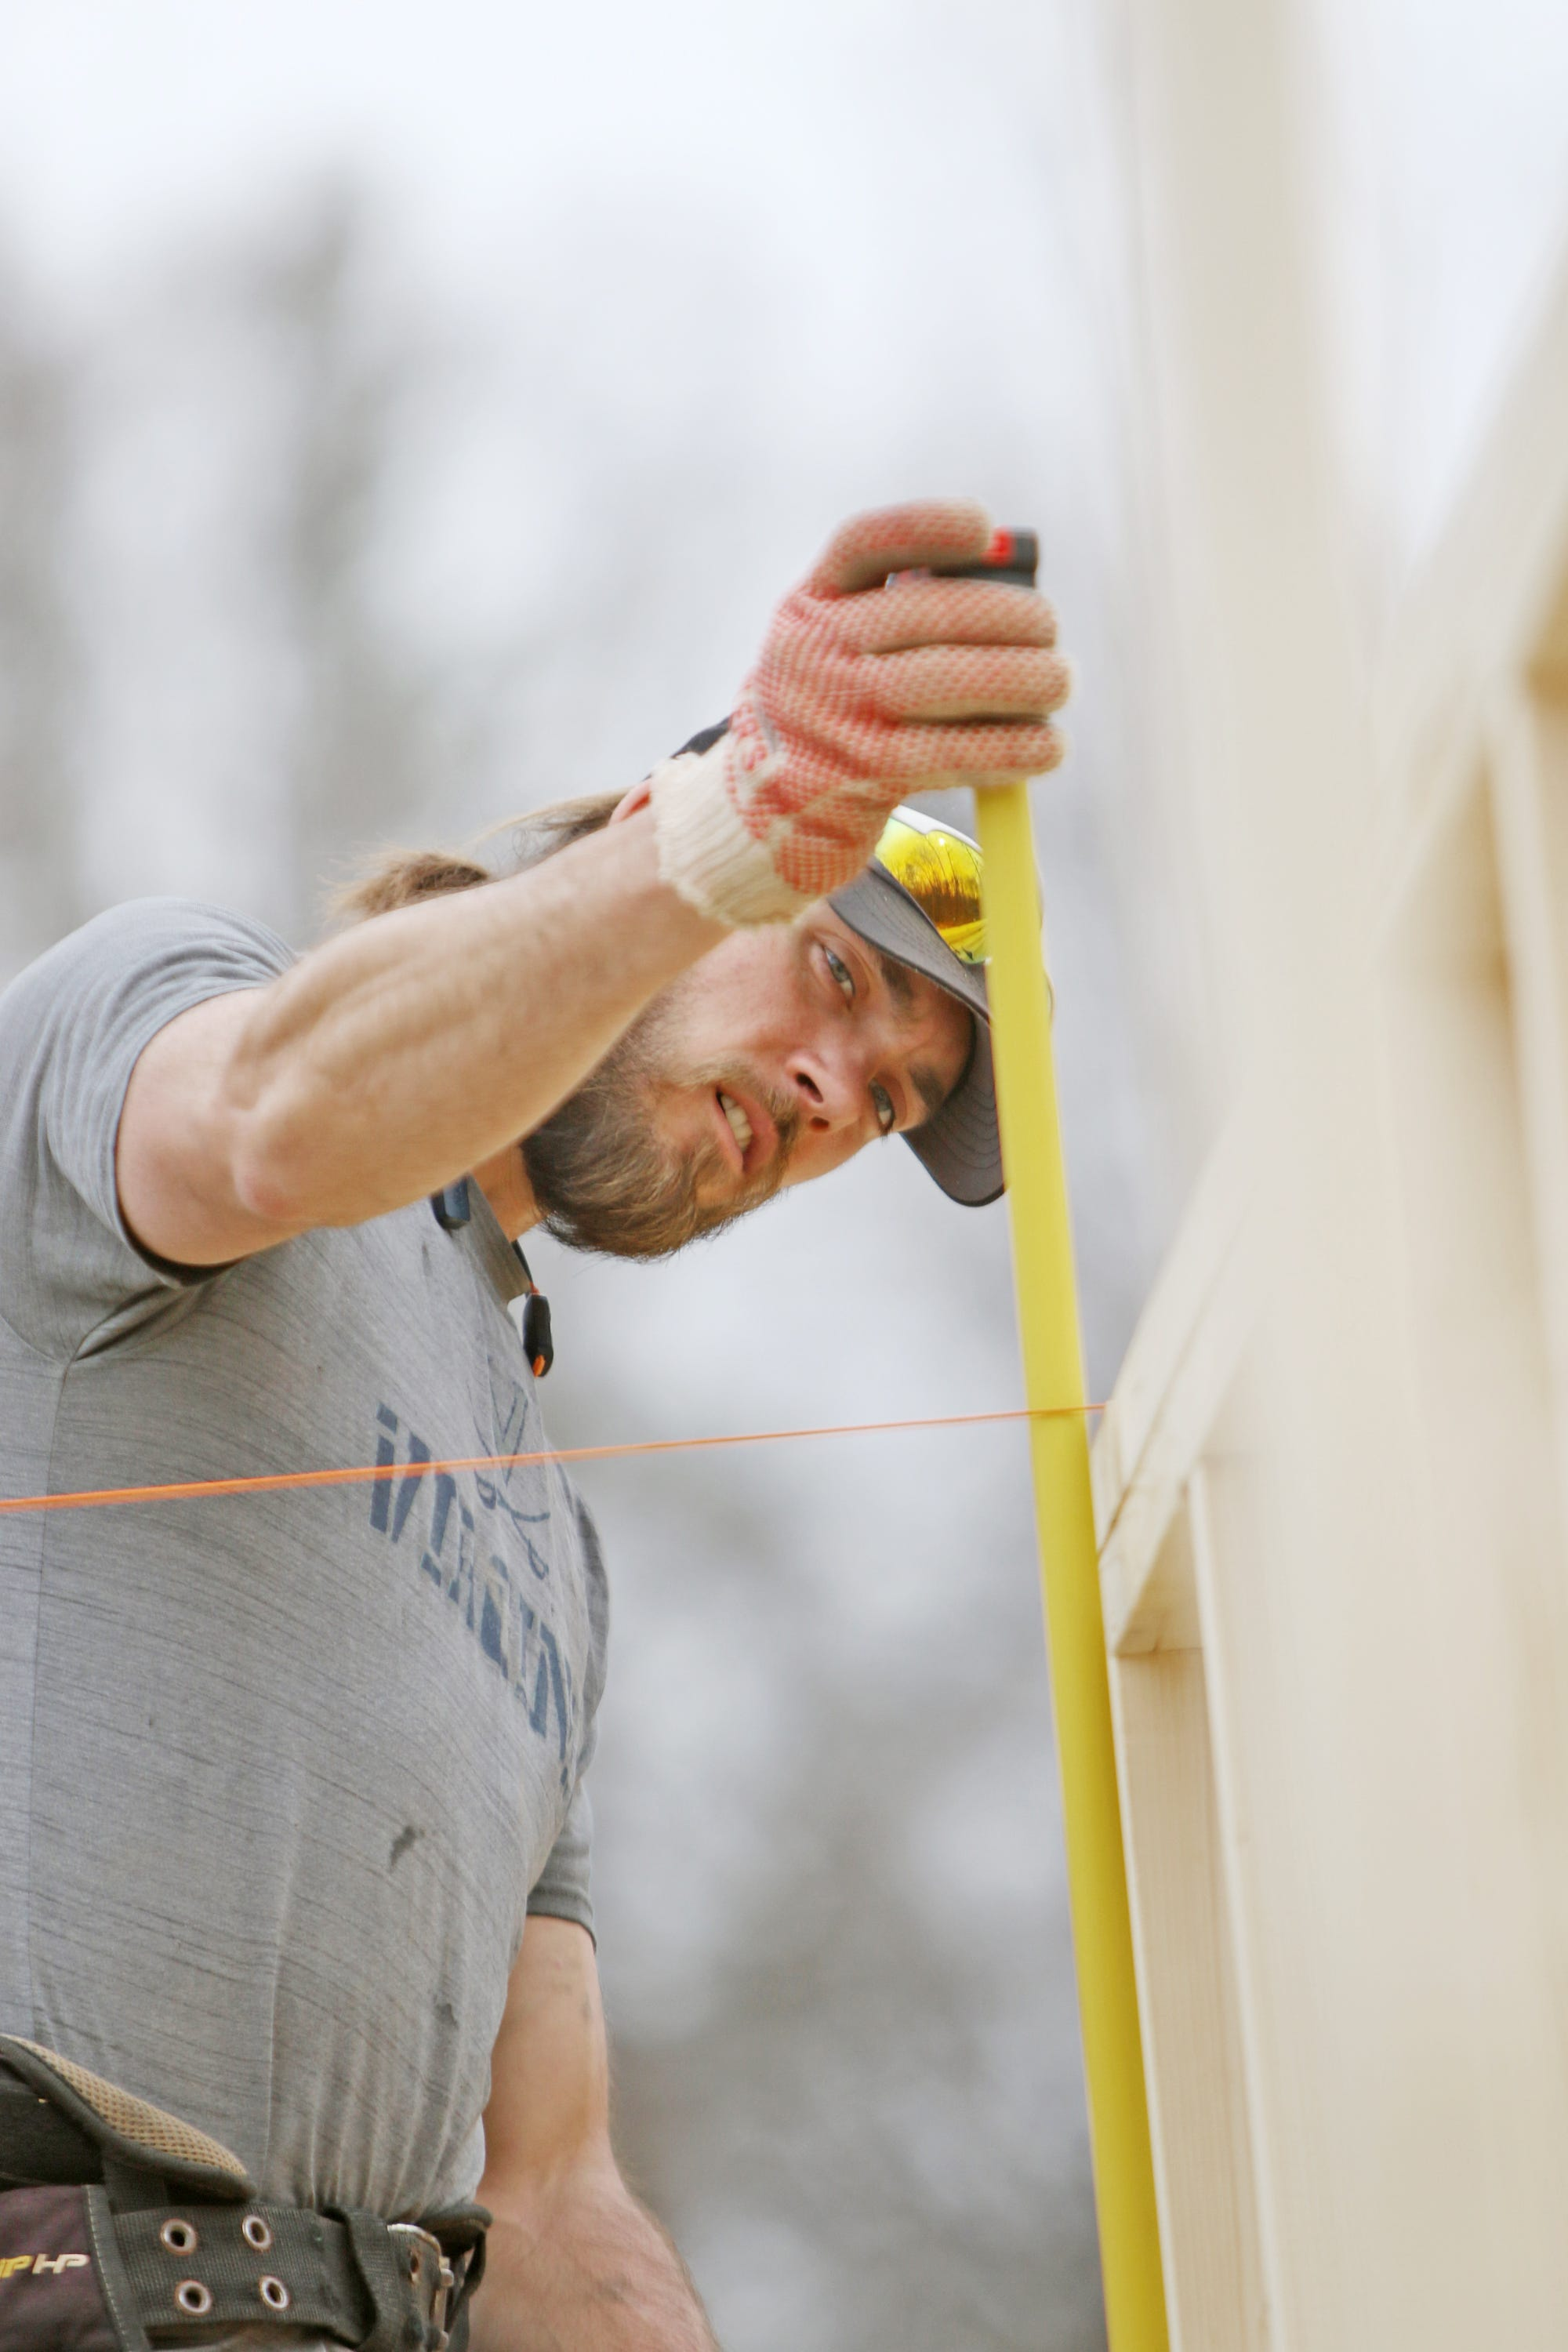 Getting a measure of freedom: Trevor Lane frames up a house in Crozet with Faith Builders Construction on Monday, March 25, 2019. Lane, who is serving out a drug conviction sentence at Middle River Regional Jail, got a job with the construction company as part of the work release program at Middle River which is designed to help with an inmate's transition back into the community.